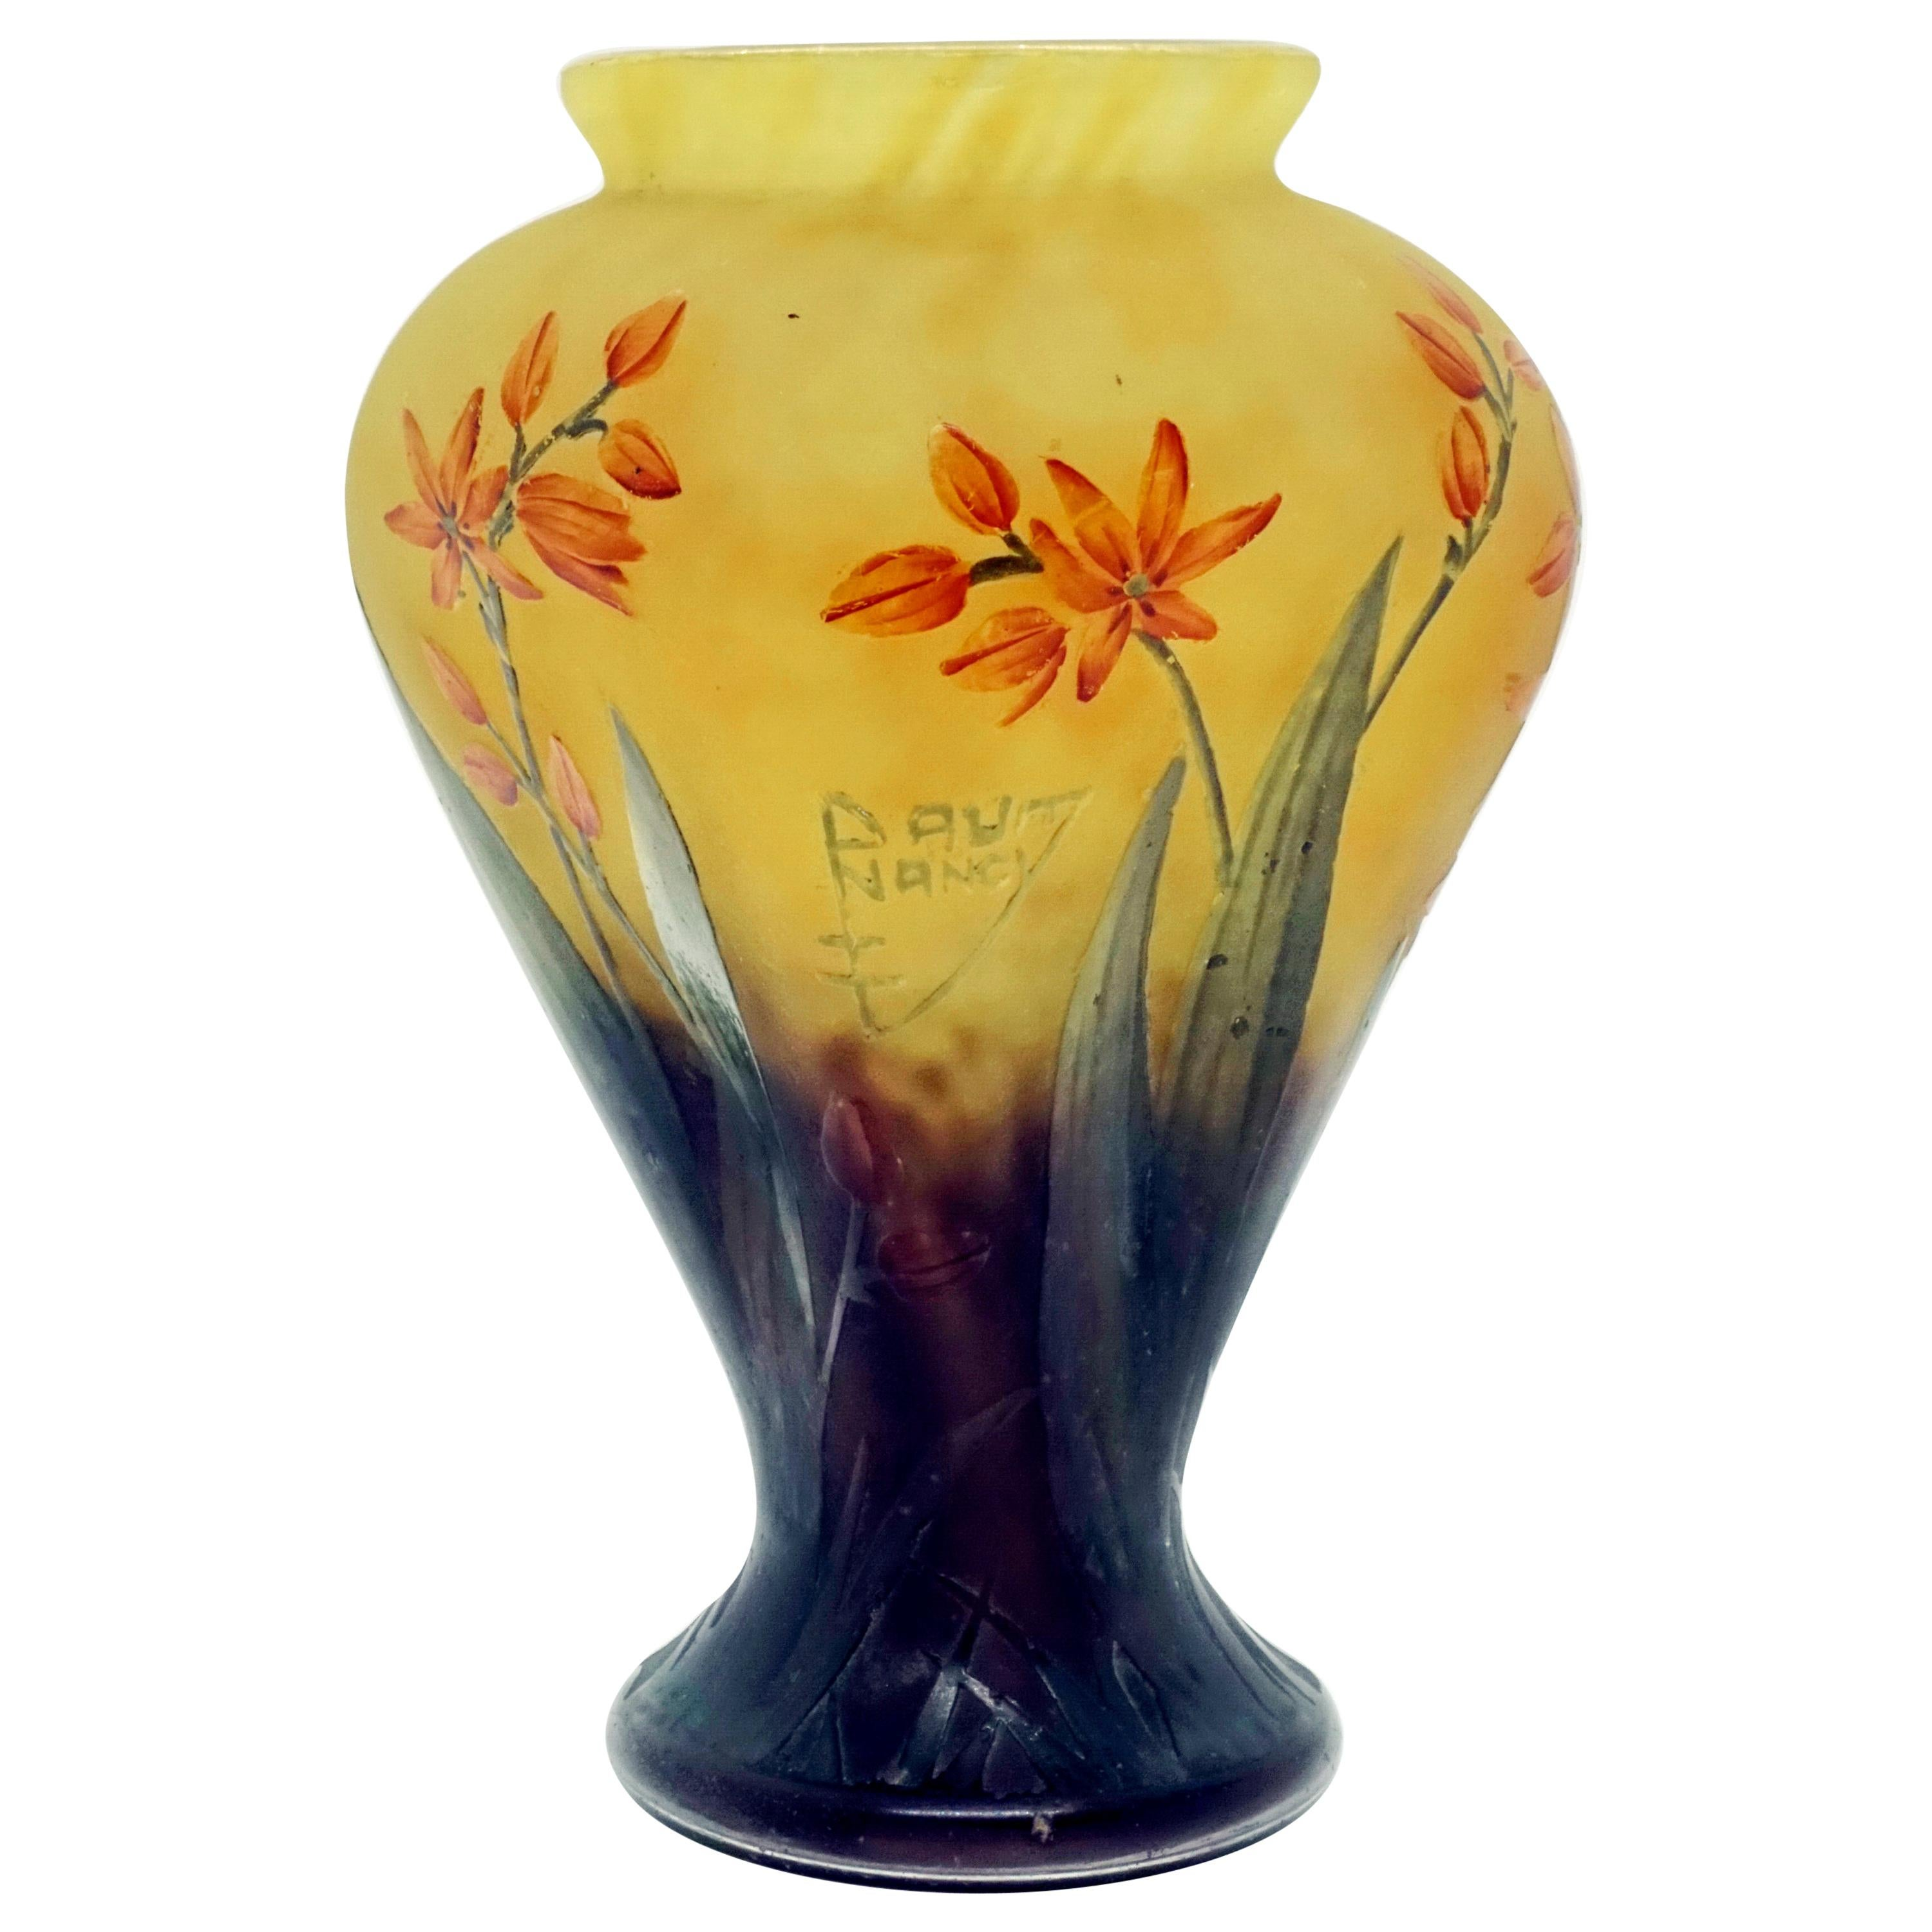 Art Nouveau Yellow and Green Vase with Orange-Red Flowers, Daum Nancy, France